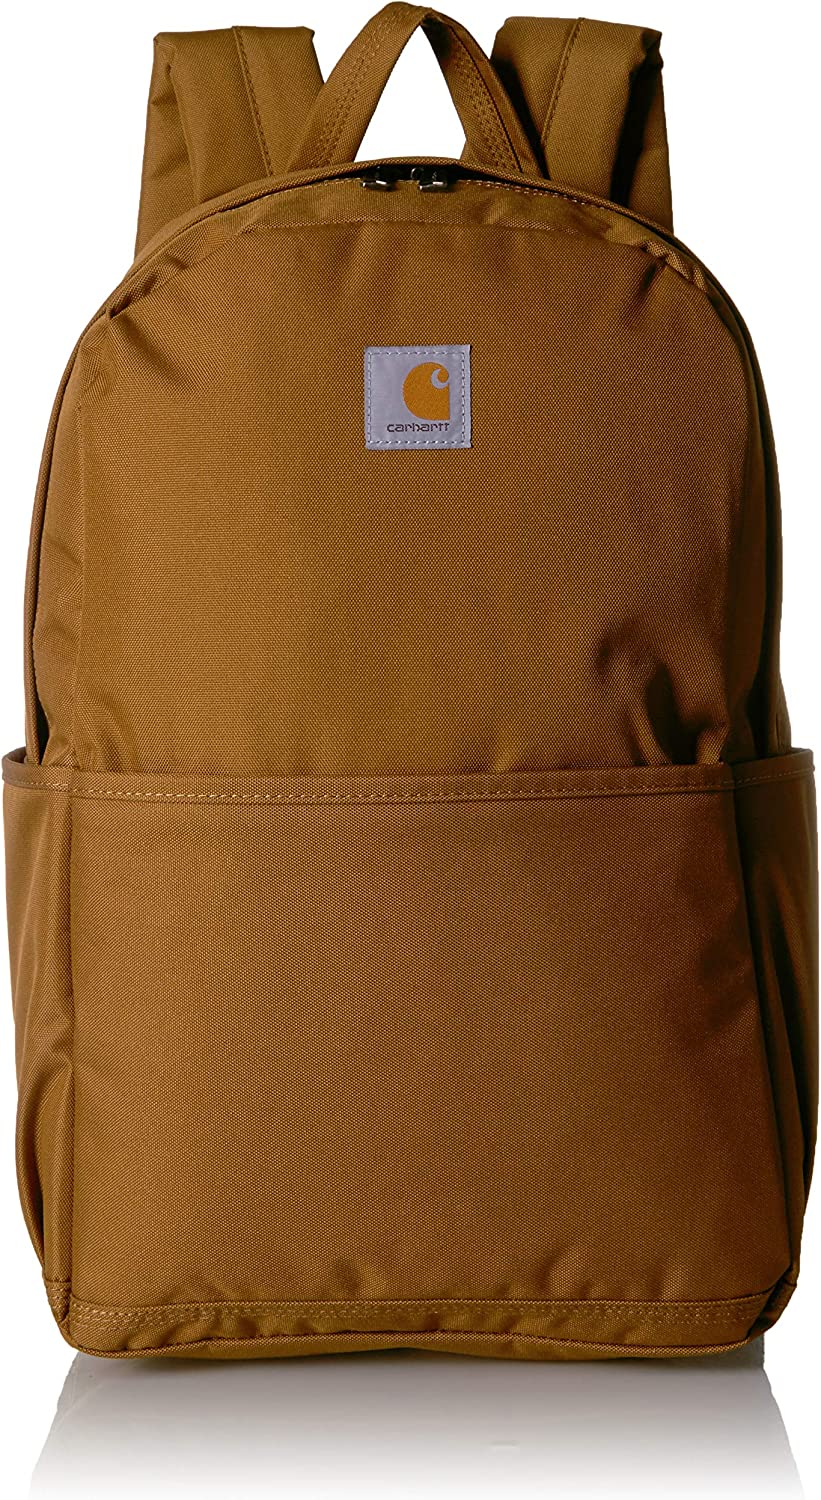 Carhartt Trade Plus Backpack with 15-Inch Laptop Compartment, Carhartt Brown